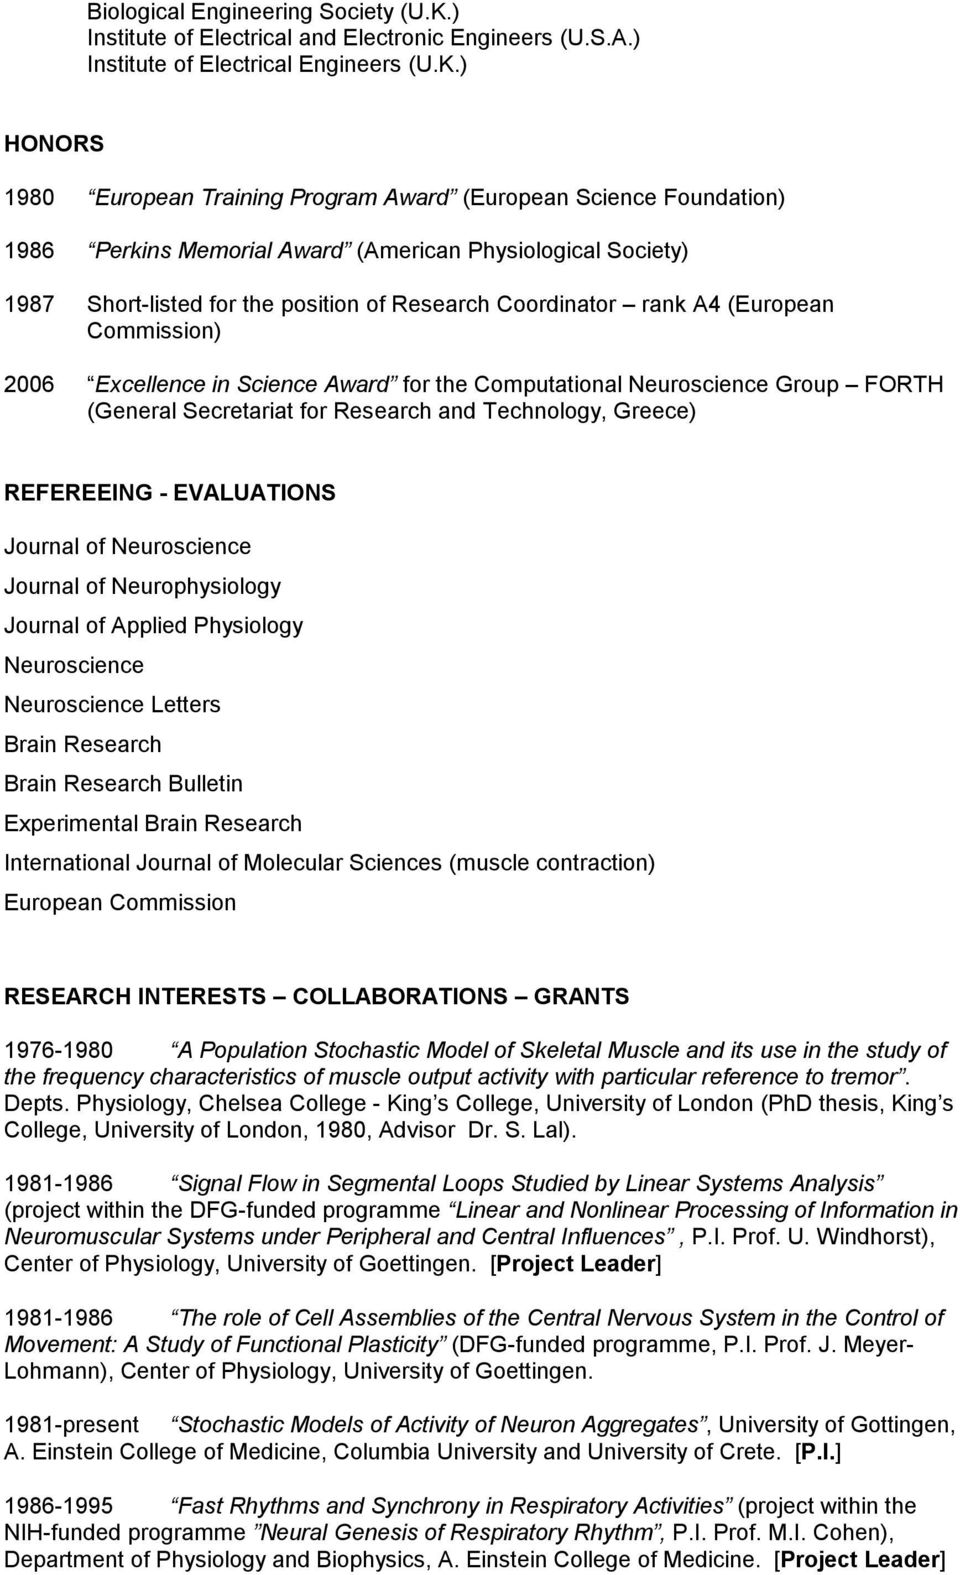 ) HONORS 1980 European Training Program Award (European Science Foundation) 1986 Perkins Memorial Award (American Physiological Society) 1987 Short-listed for the position of Research Coordinator